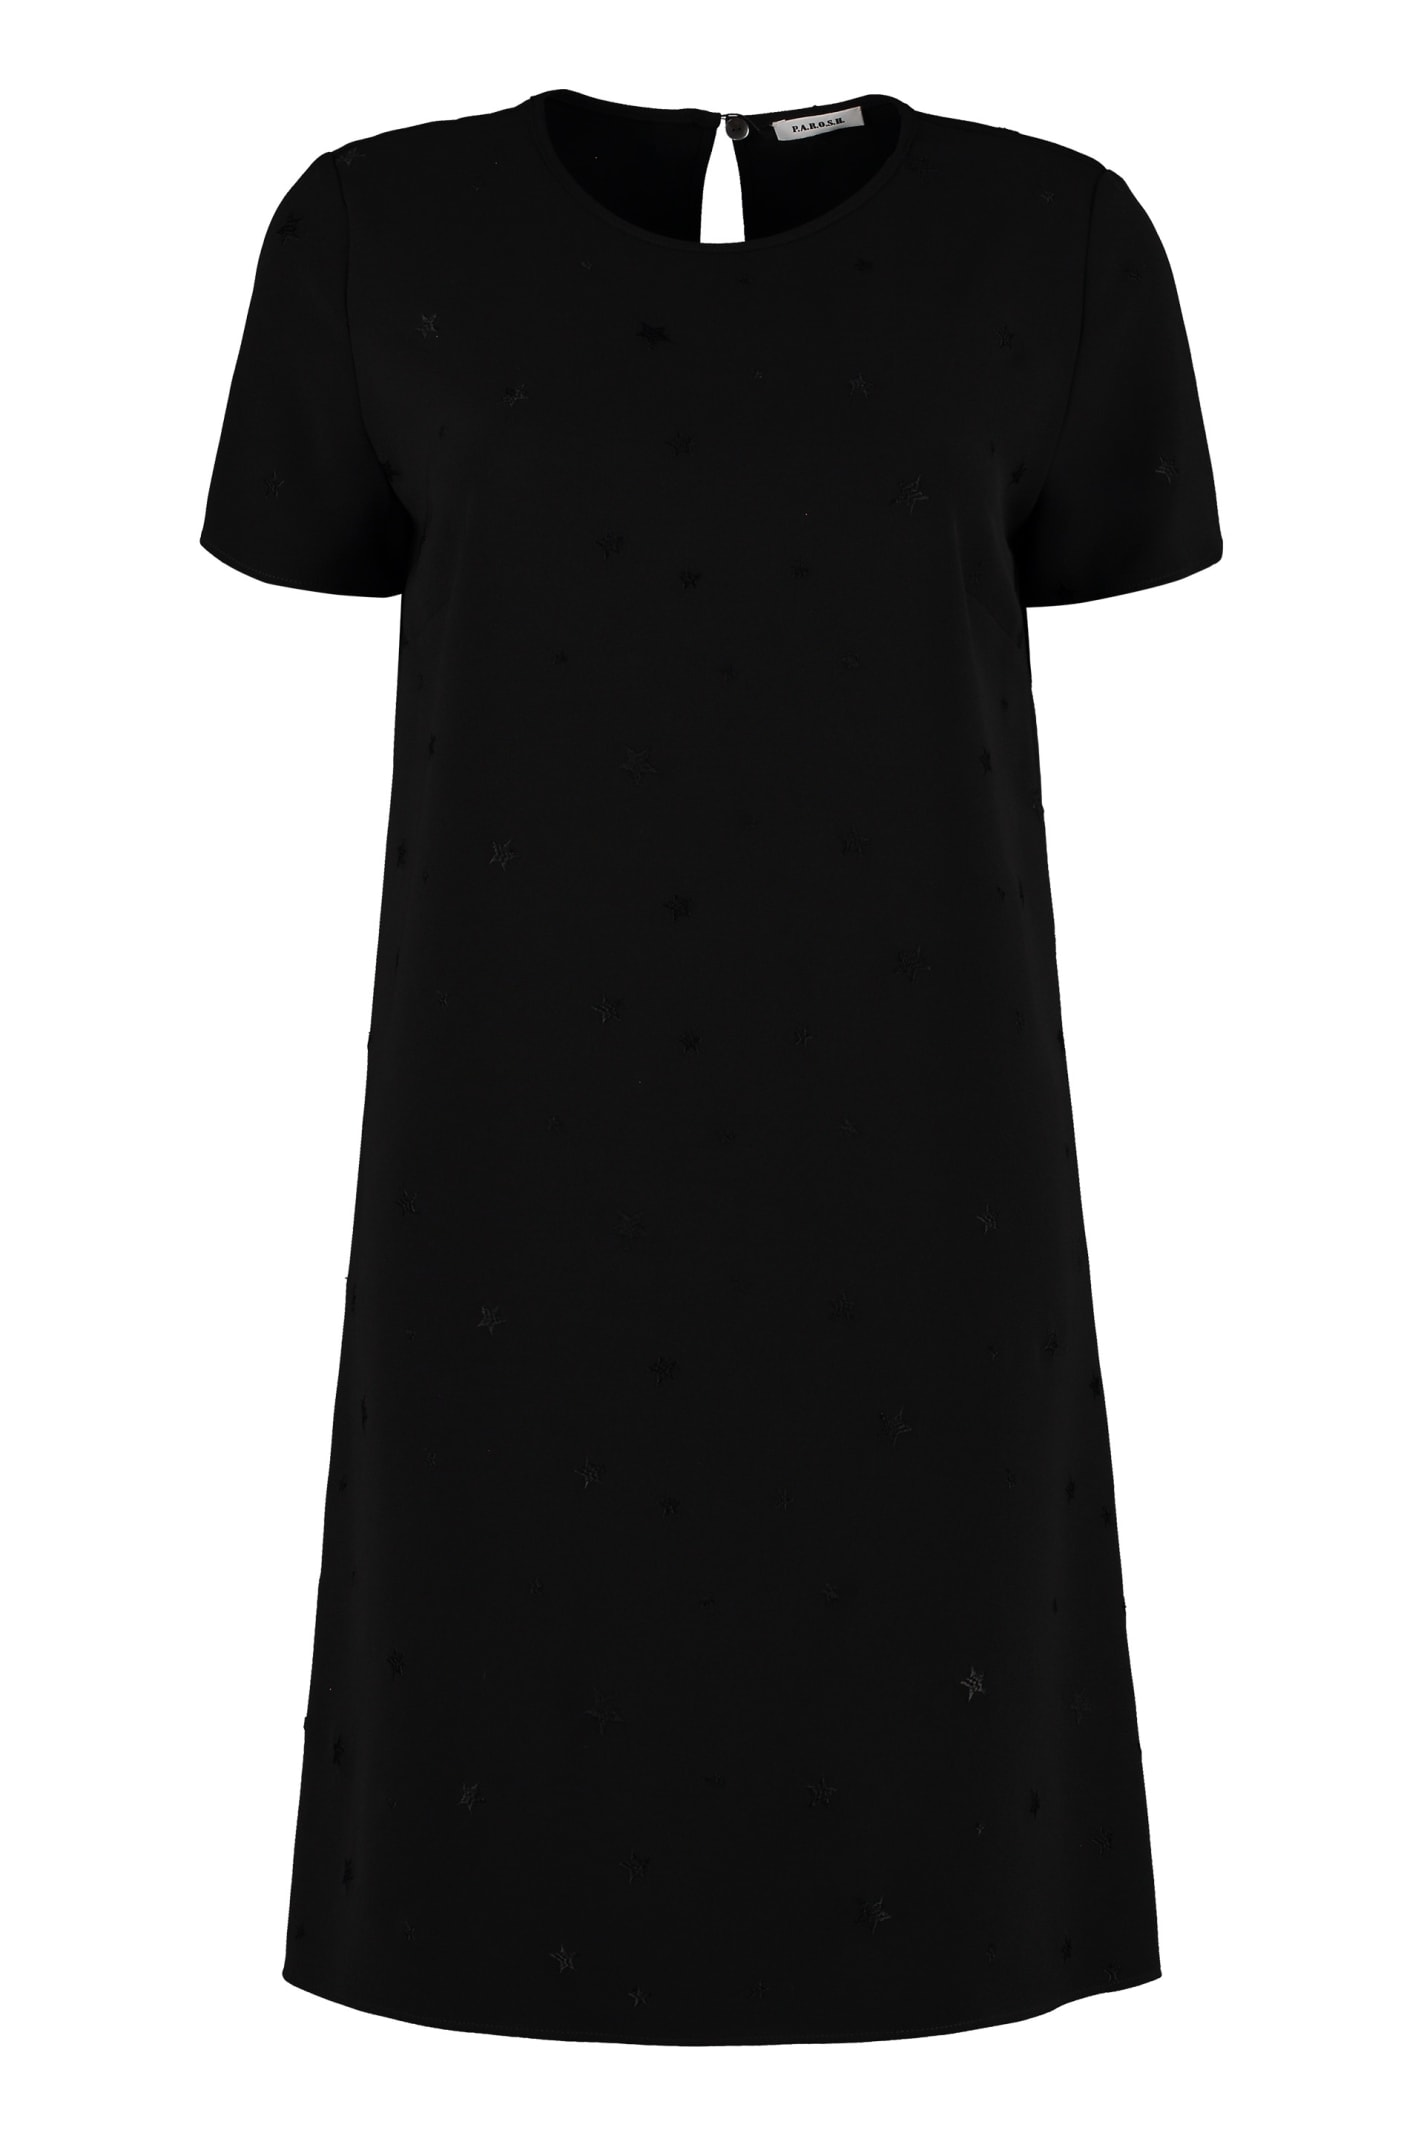 Parosh Crèpe Dress